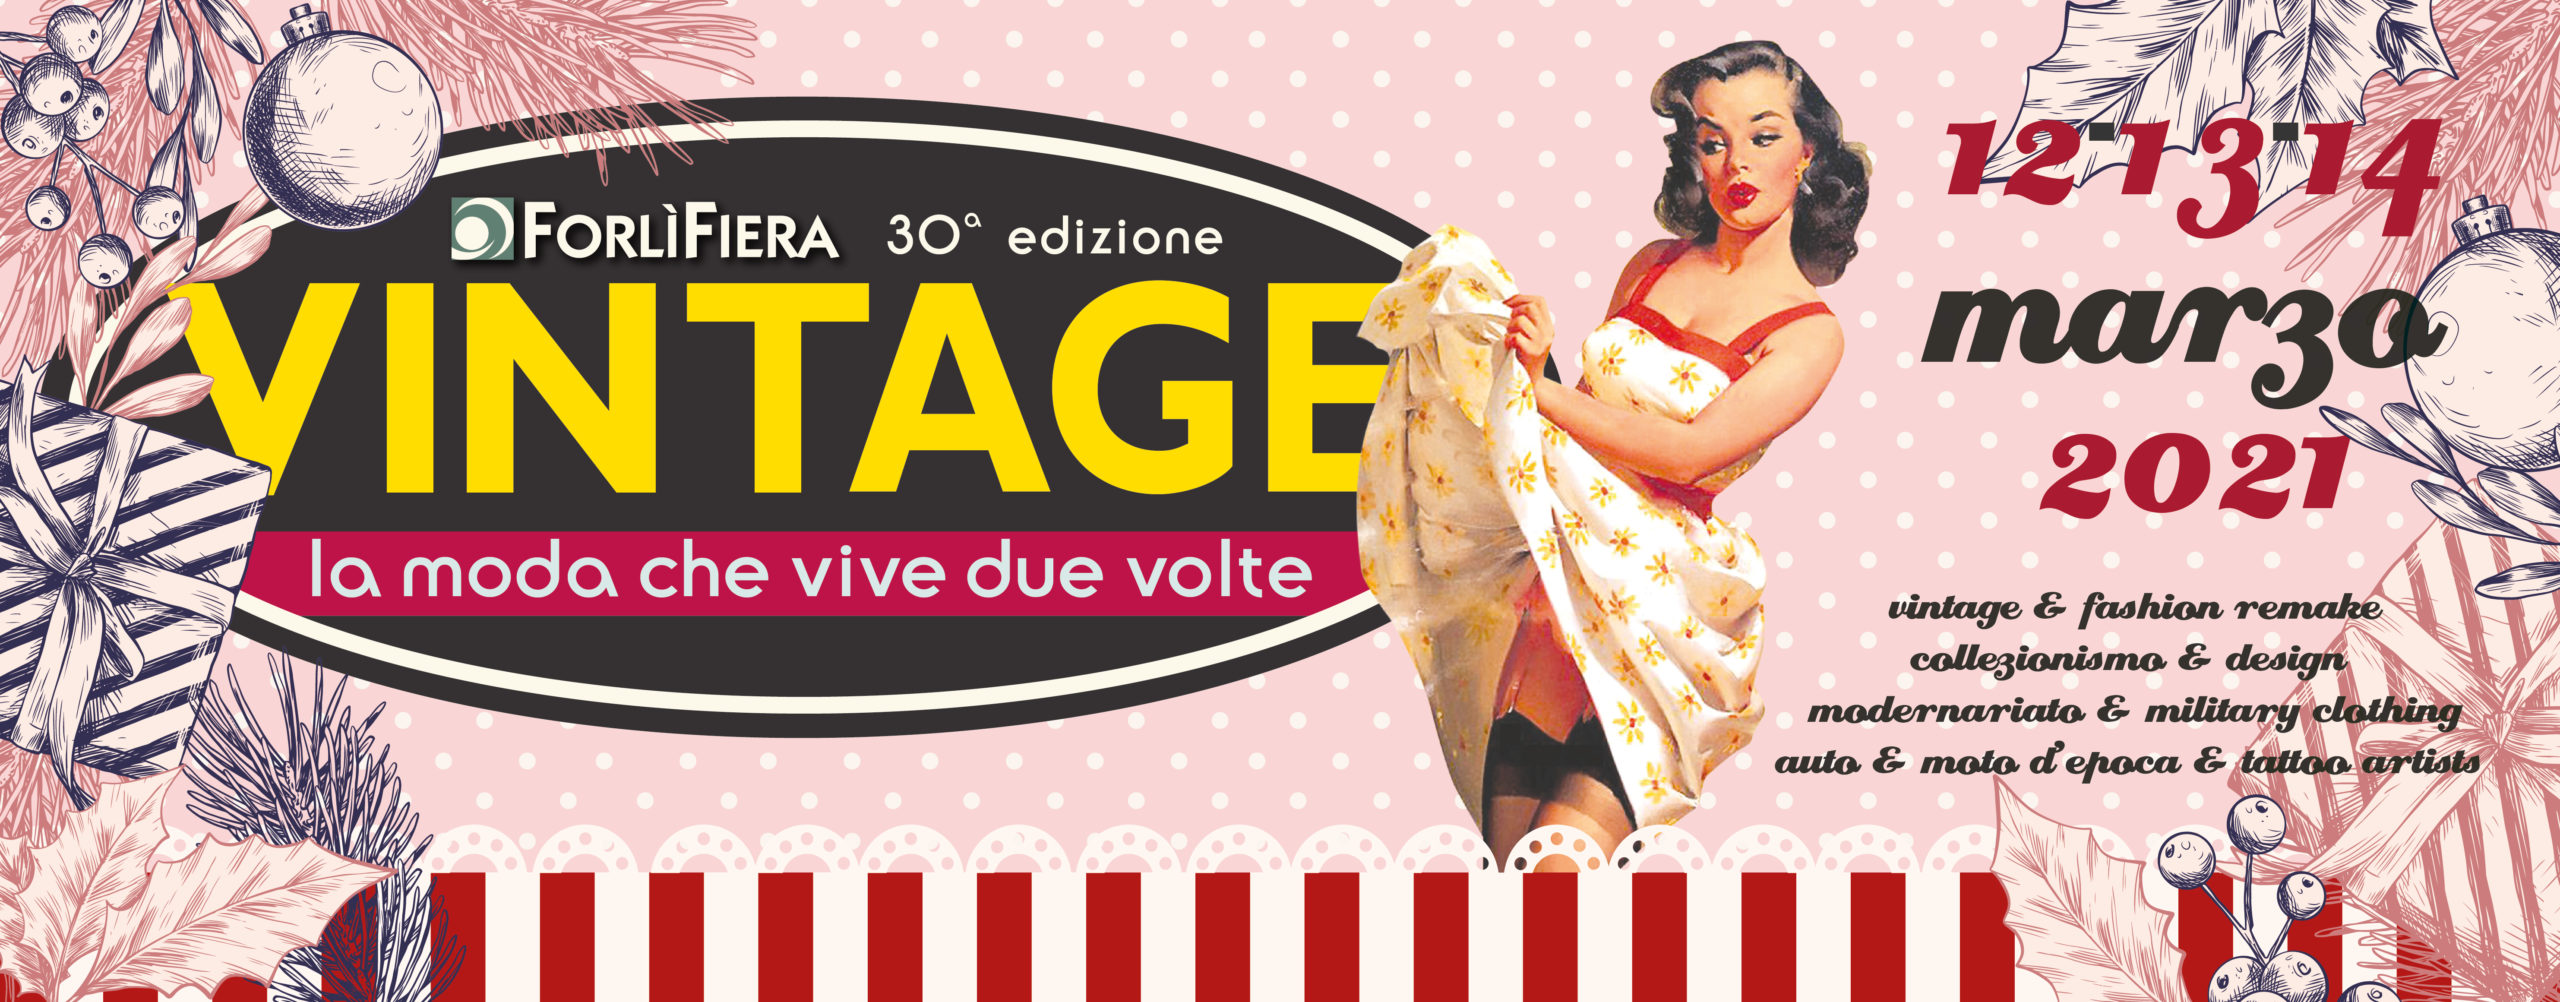 HOME-SITO_VINTAGE_marzo-2021_natale-scaled